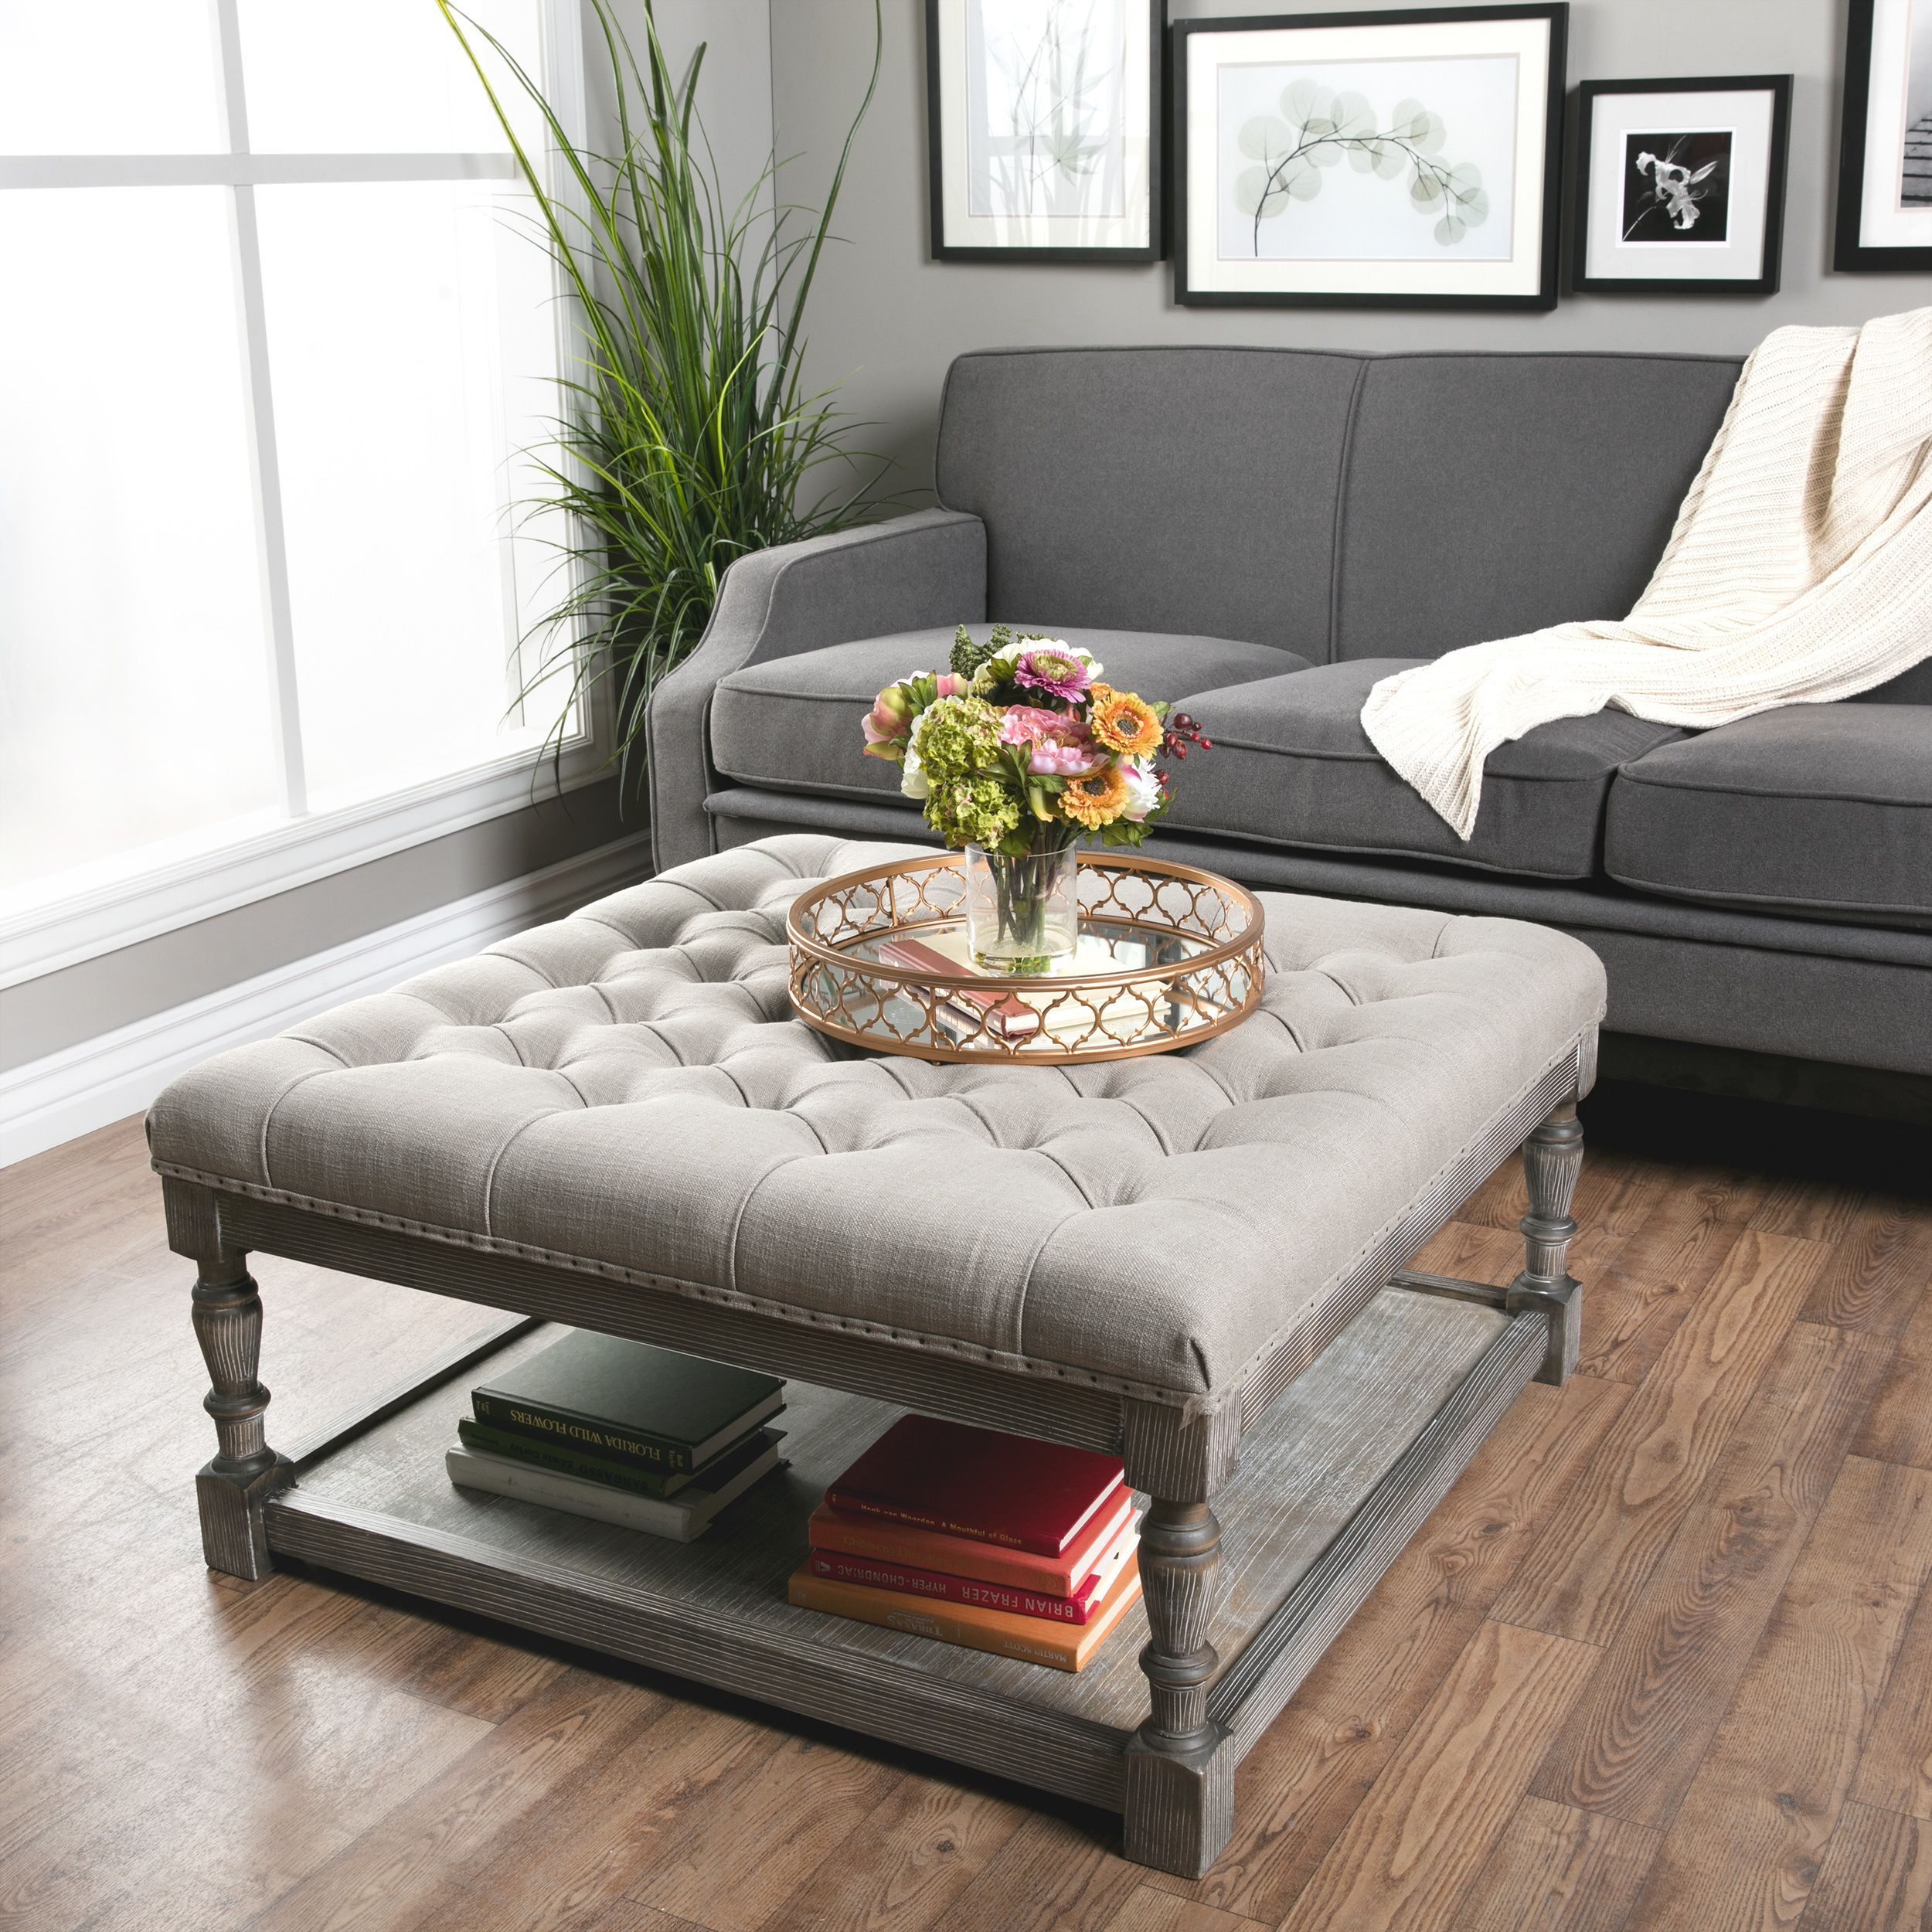 Best The Gray Barn Creston Beige Linen Tufted Ottoman In 2020 400 x 300